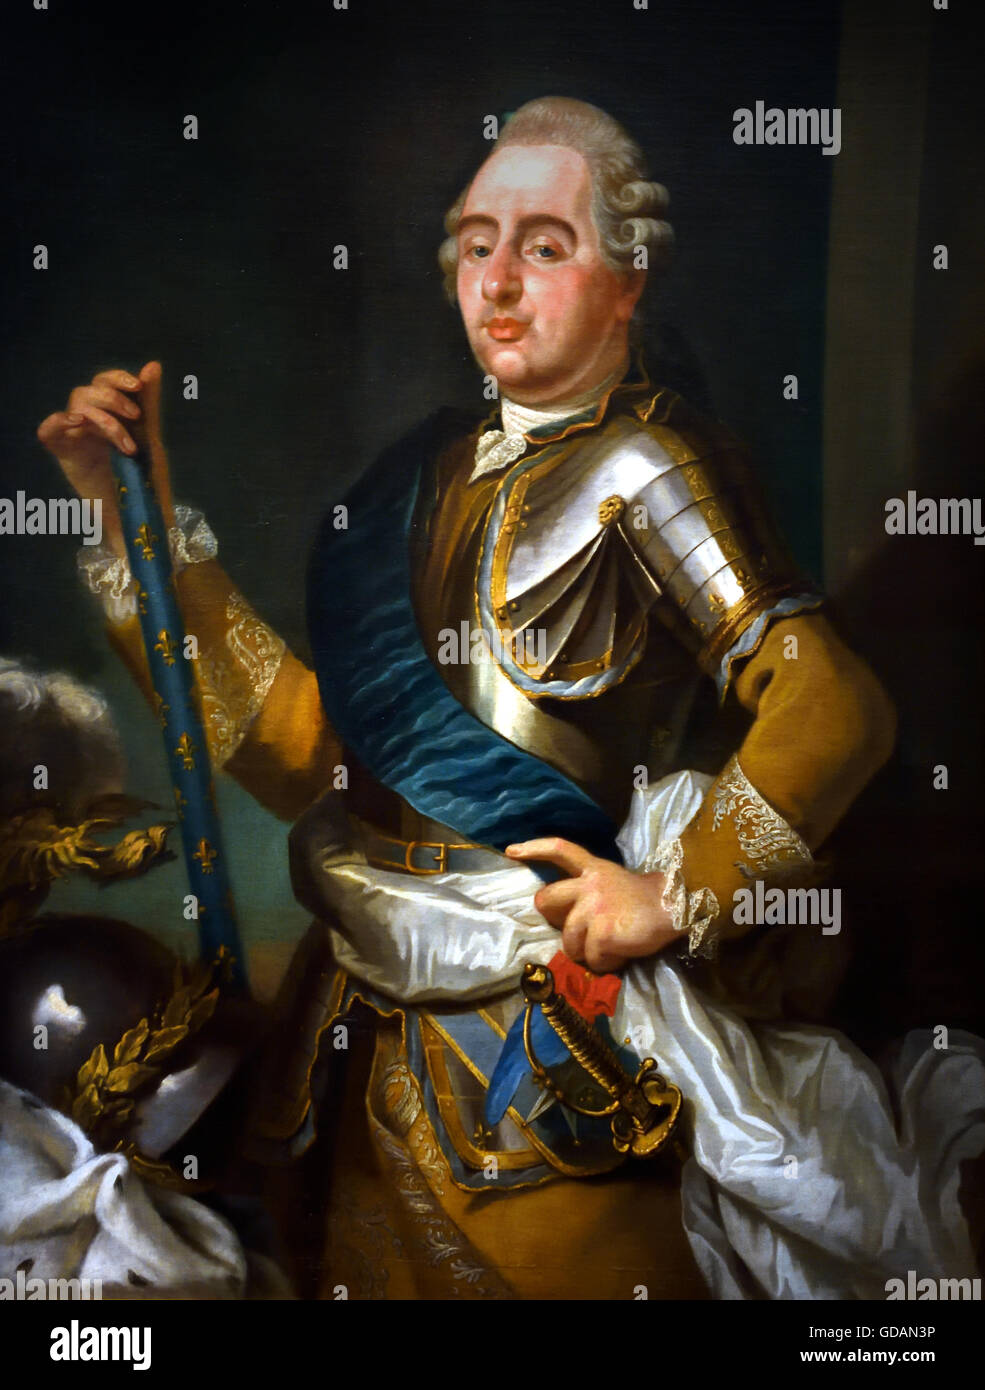 Louis XVI King of France 1774-1792  with command staff, the white sash of the Bourbons and the town red and blue - Stock Image